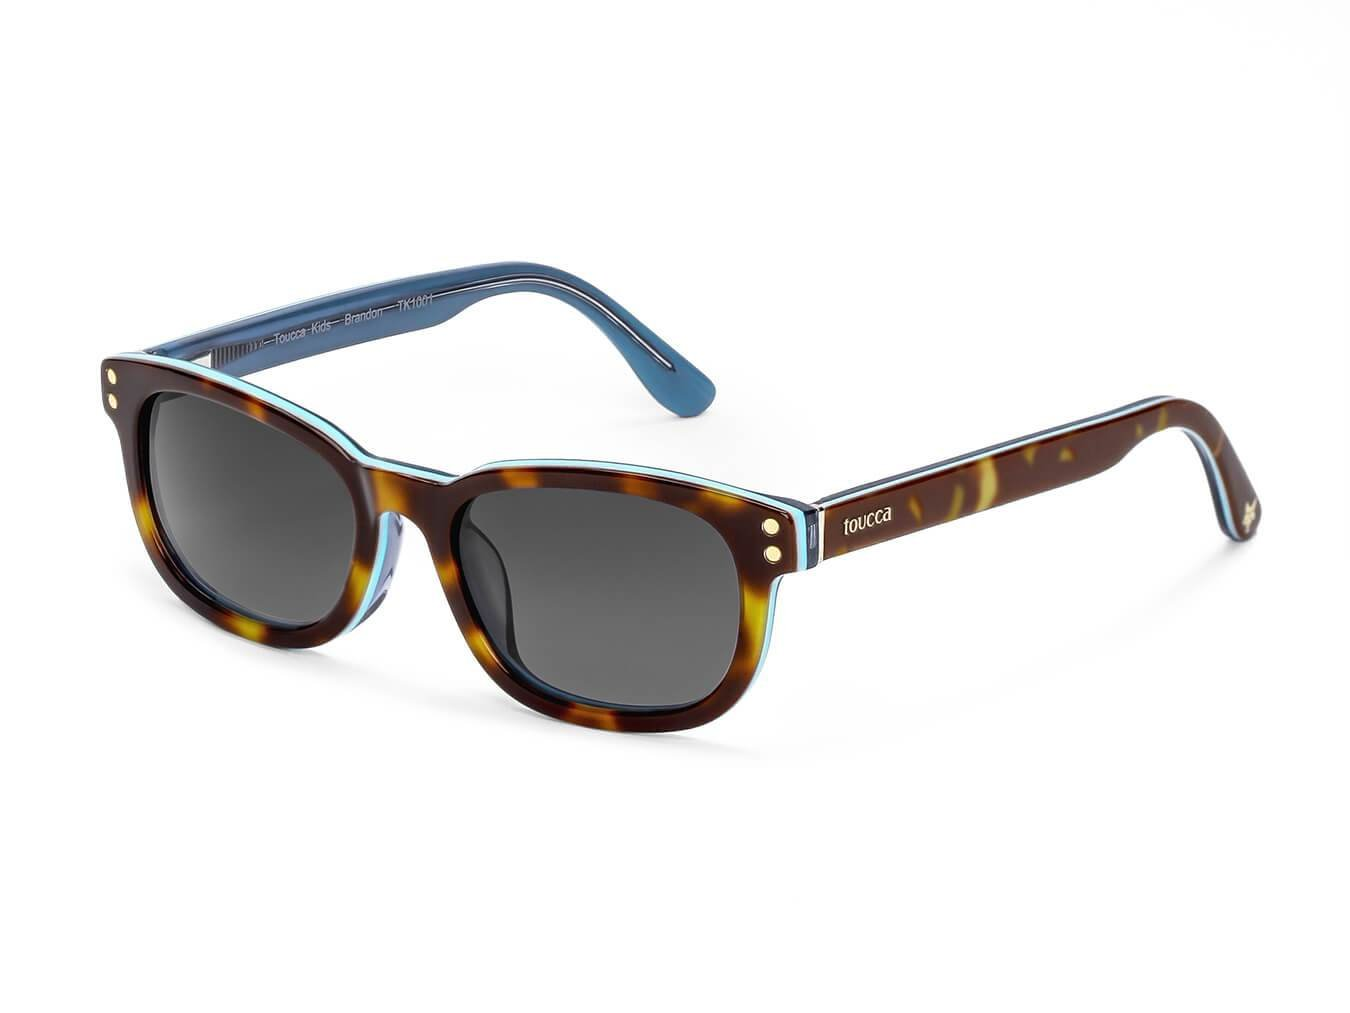 toucca kids: Polarized Toddler Sunglasses for Trendy Stylish Children, Ages 2-6